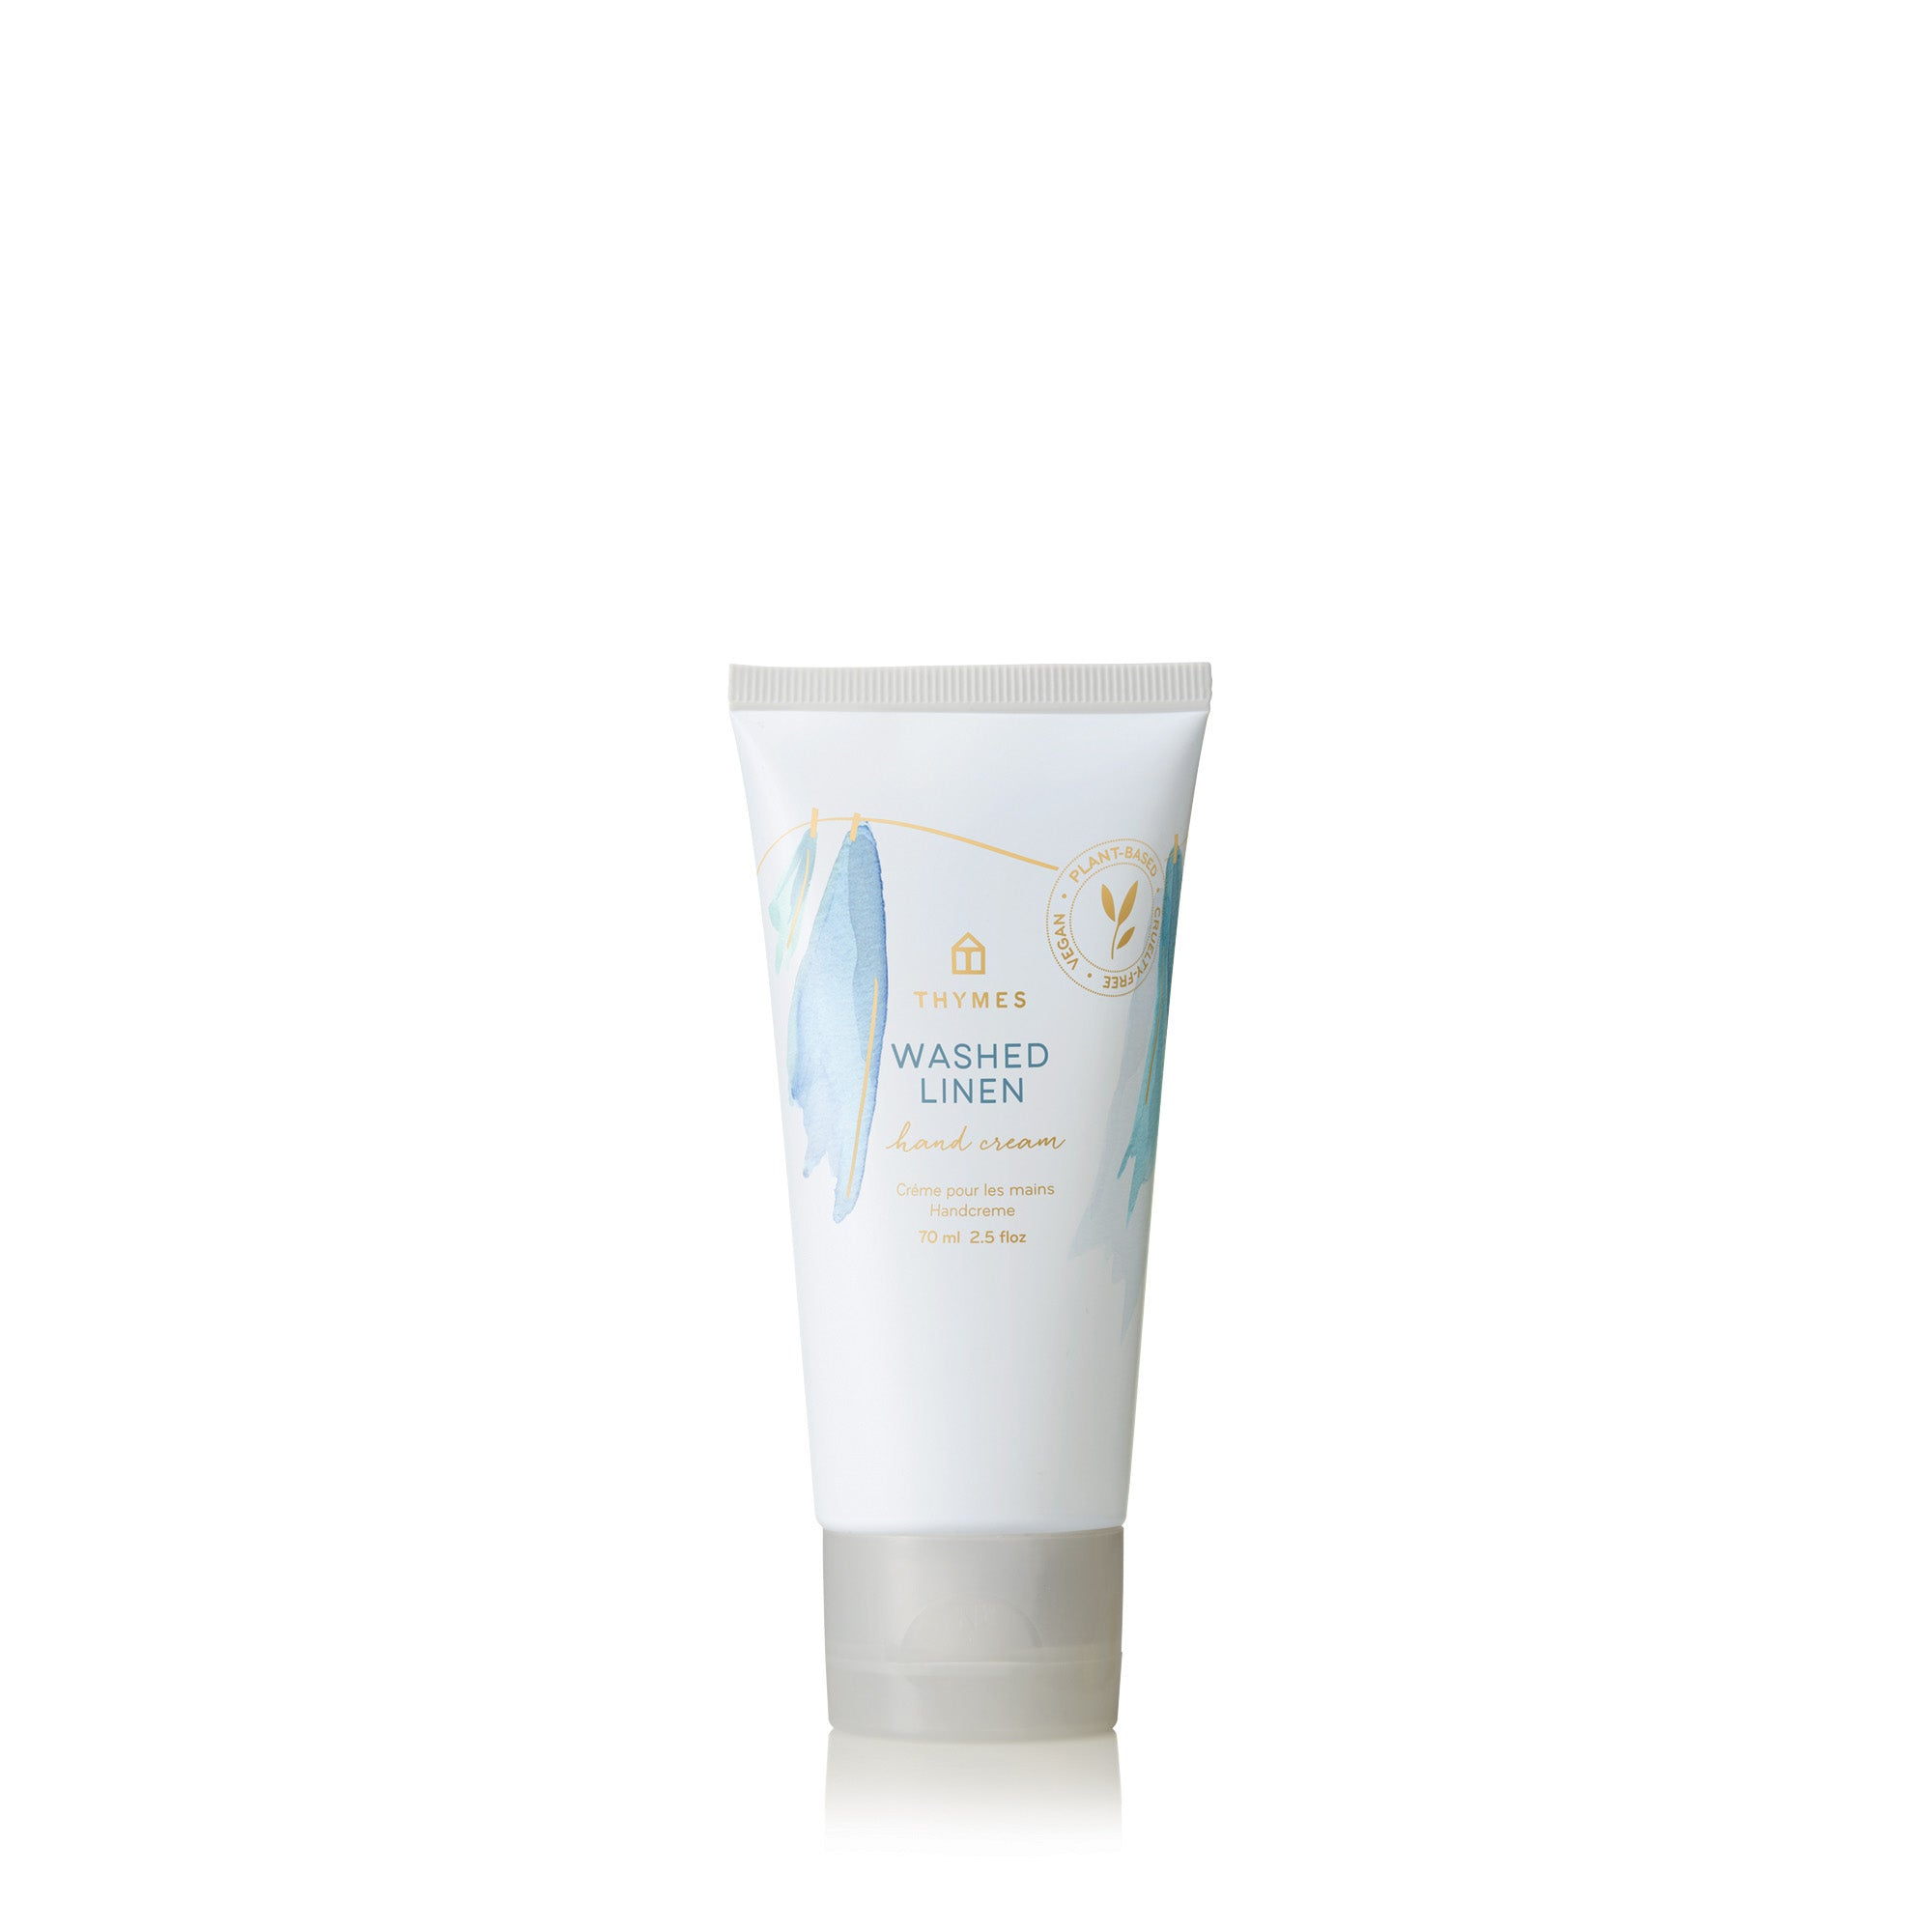 WASHED LINEN HAND CREAM